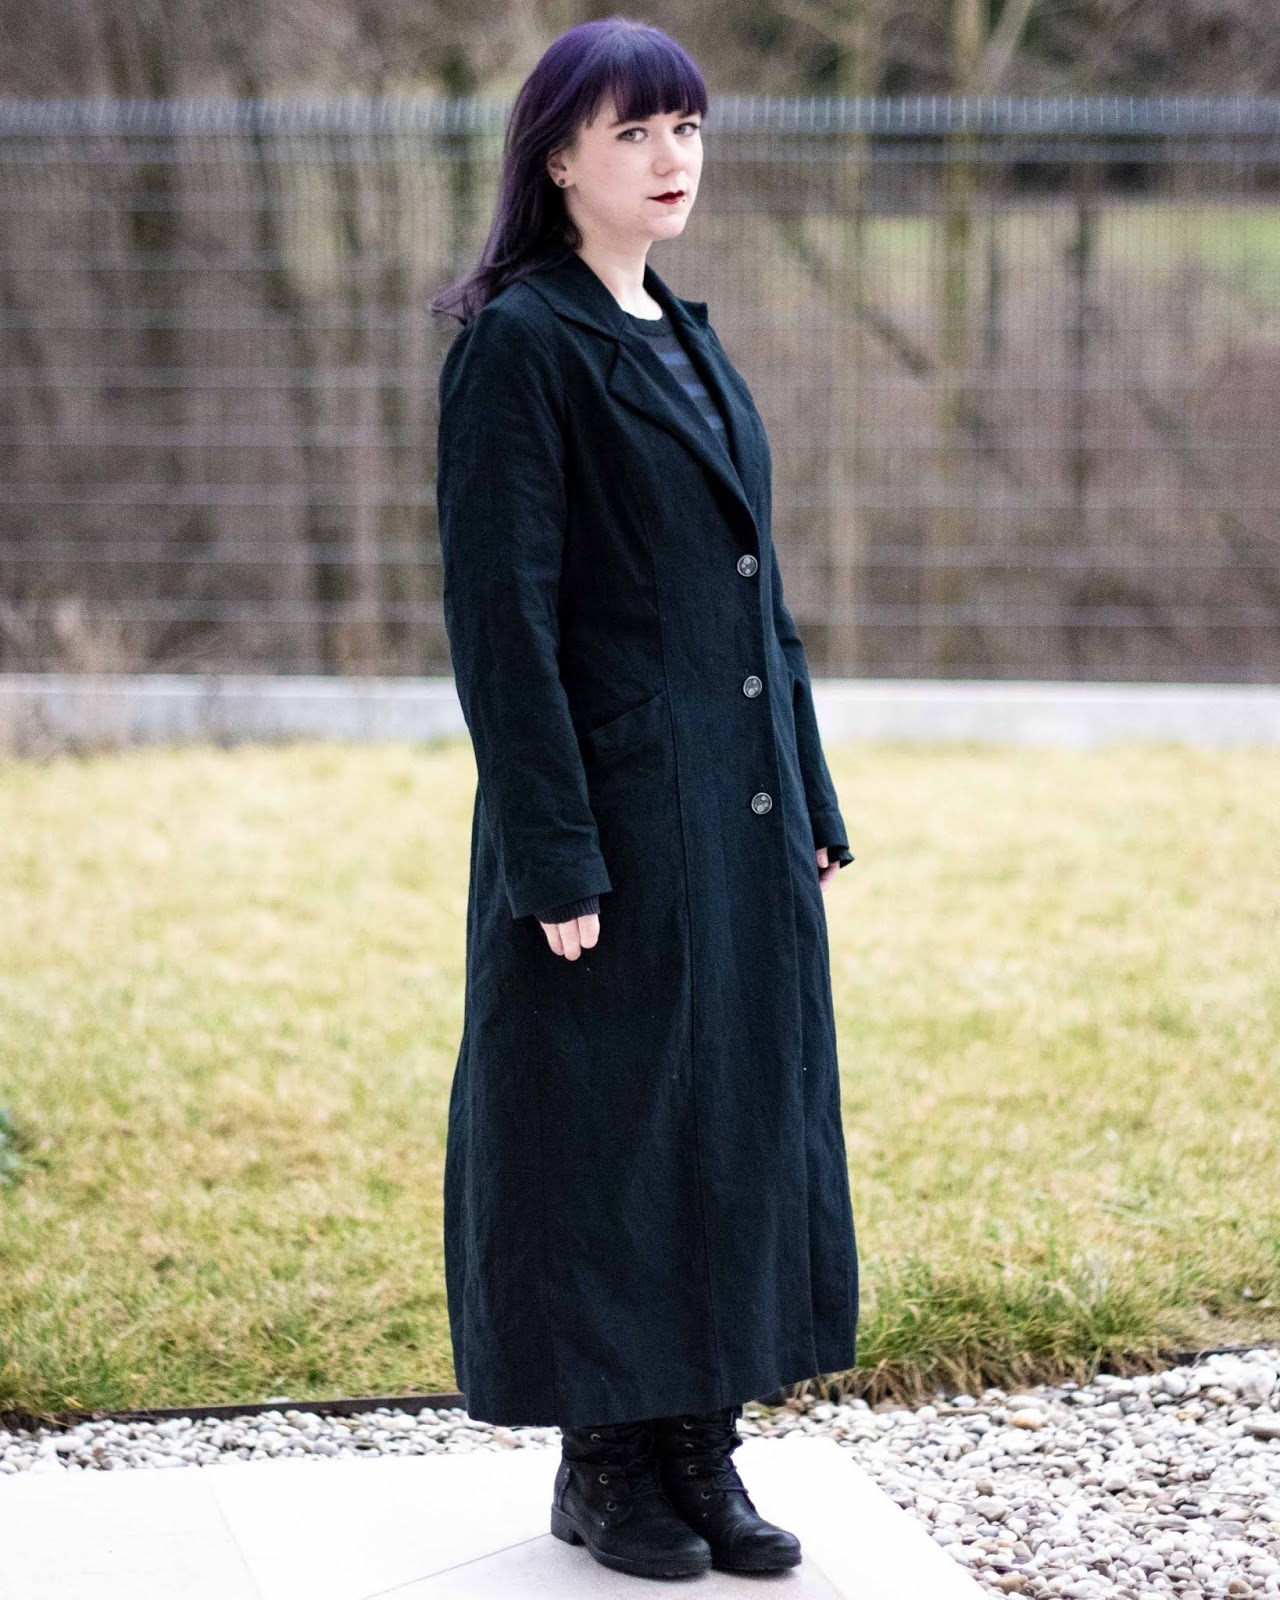 Minn's Things sewing By Hand London's Rumana Coat pattern winter classic gothic